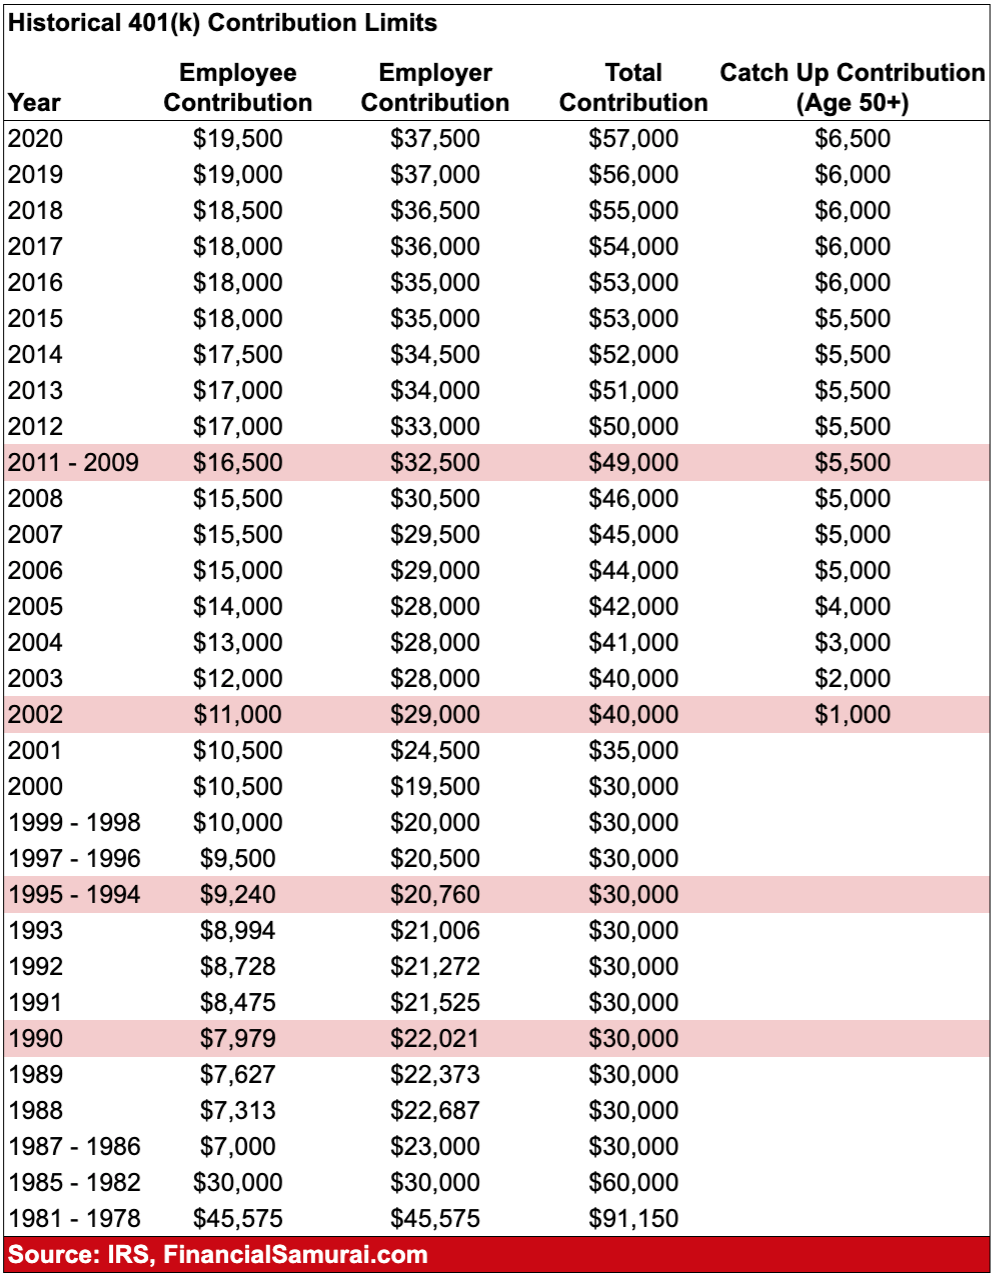 Historical 401(k) Contribution Limits